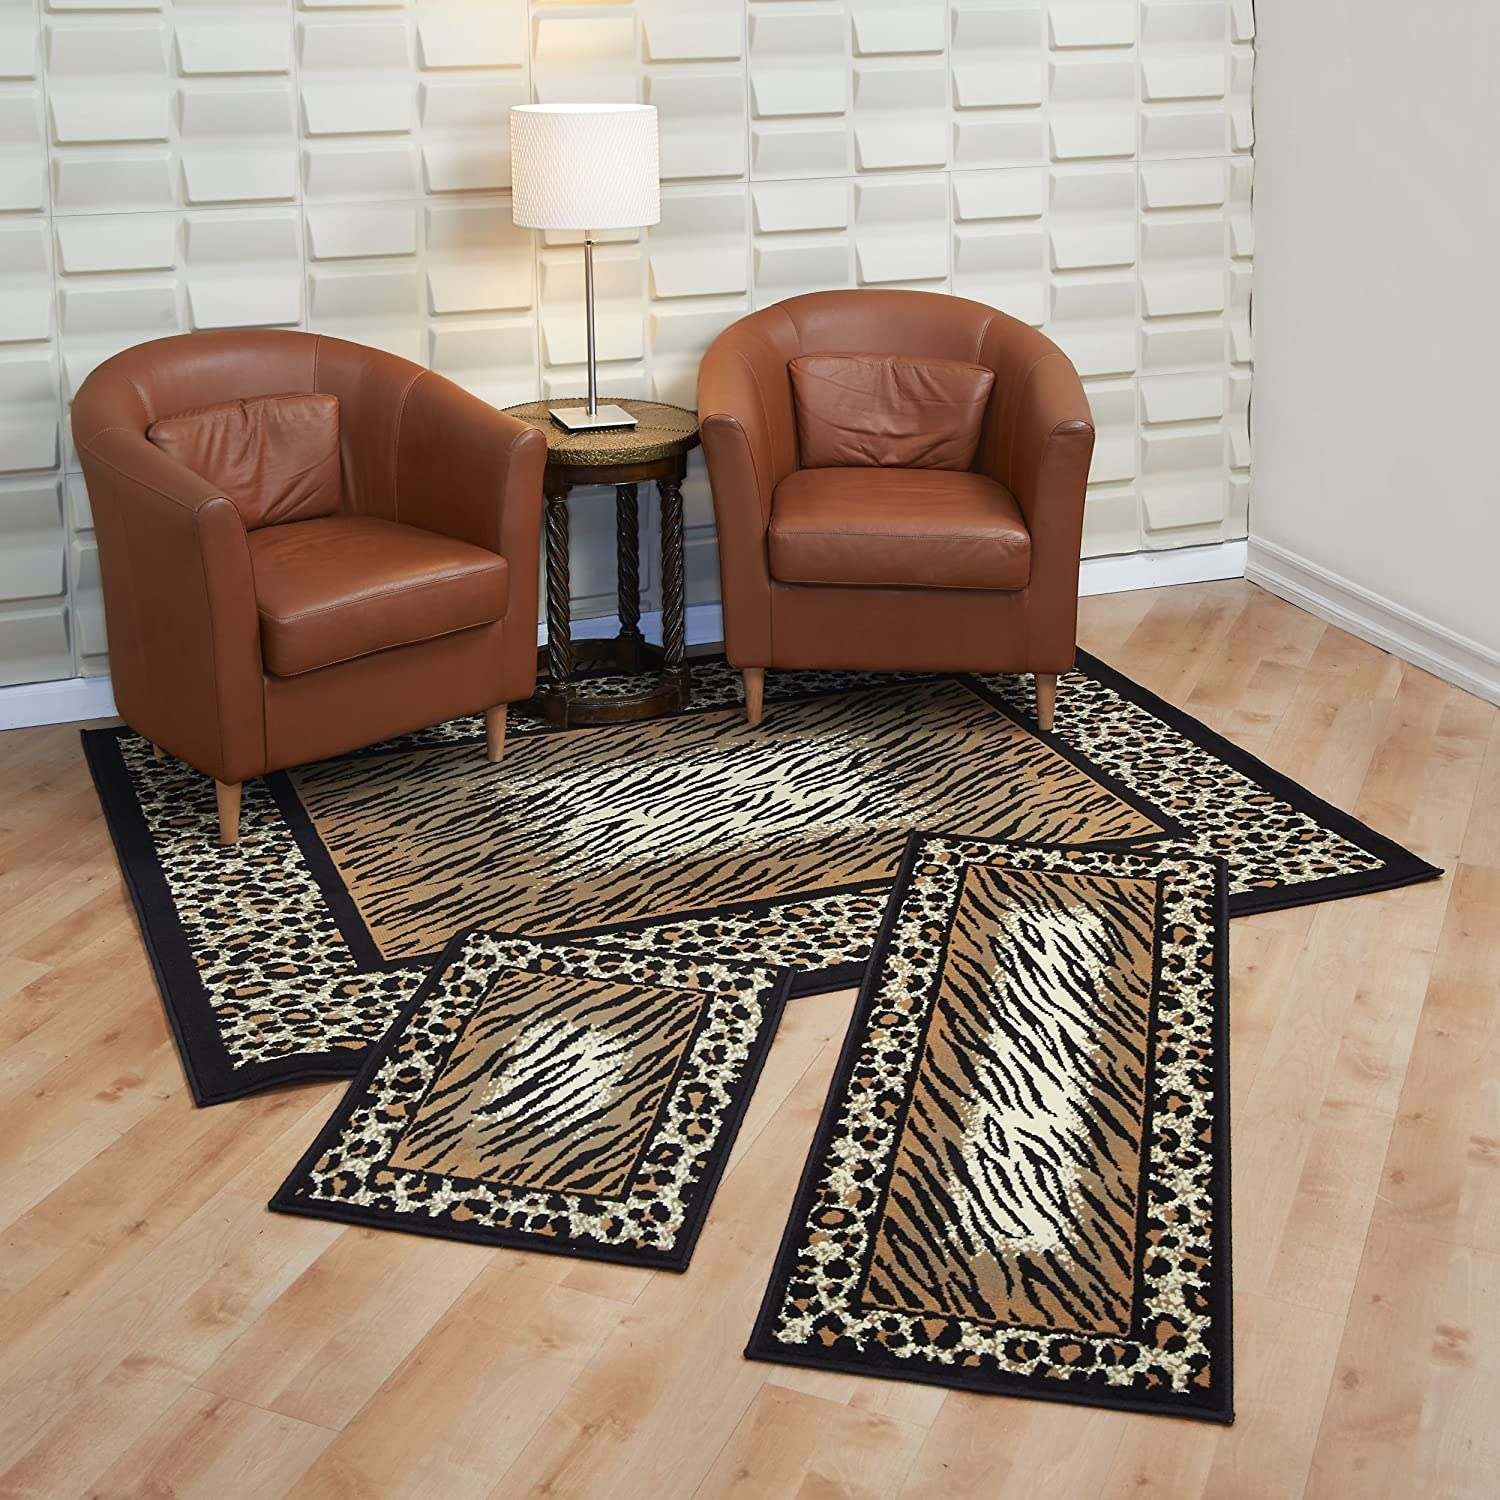 Achim Home Furnishings Capri Rug Set, 3-Piece, Leopard Skin Achim Imports X831/373-J